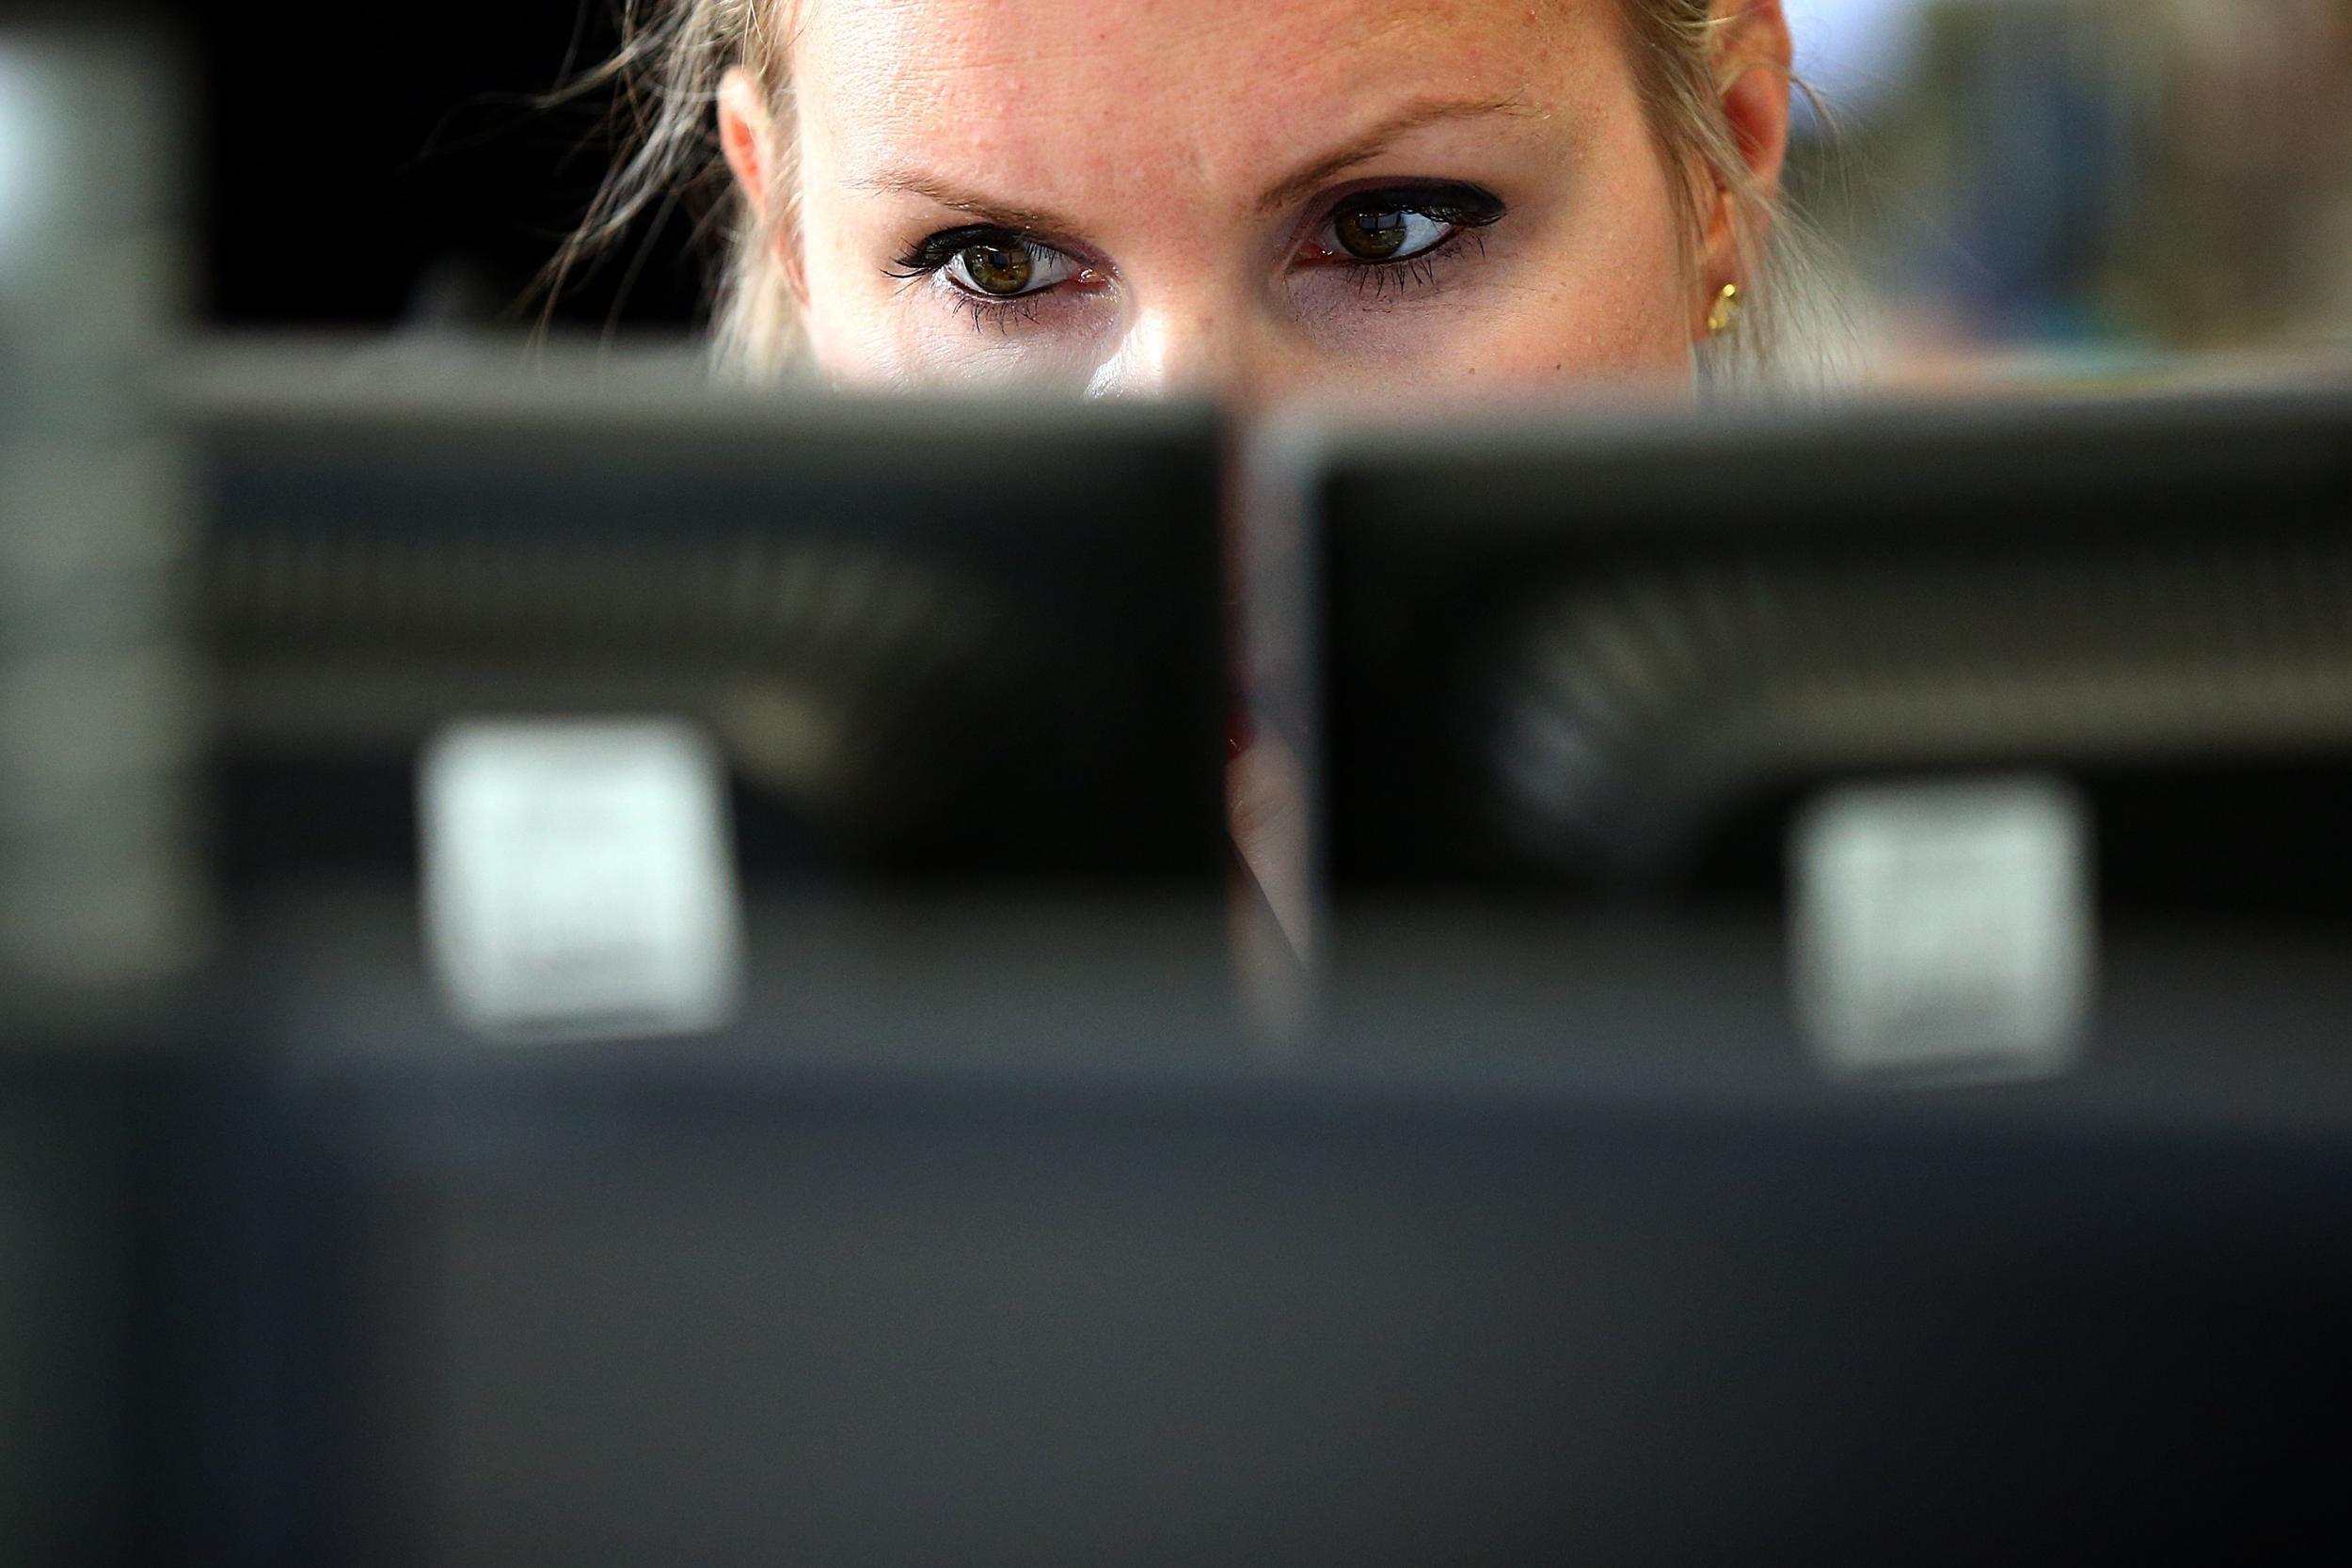 17 unprofessional work habits that make your boss and coworkers hate you